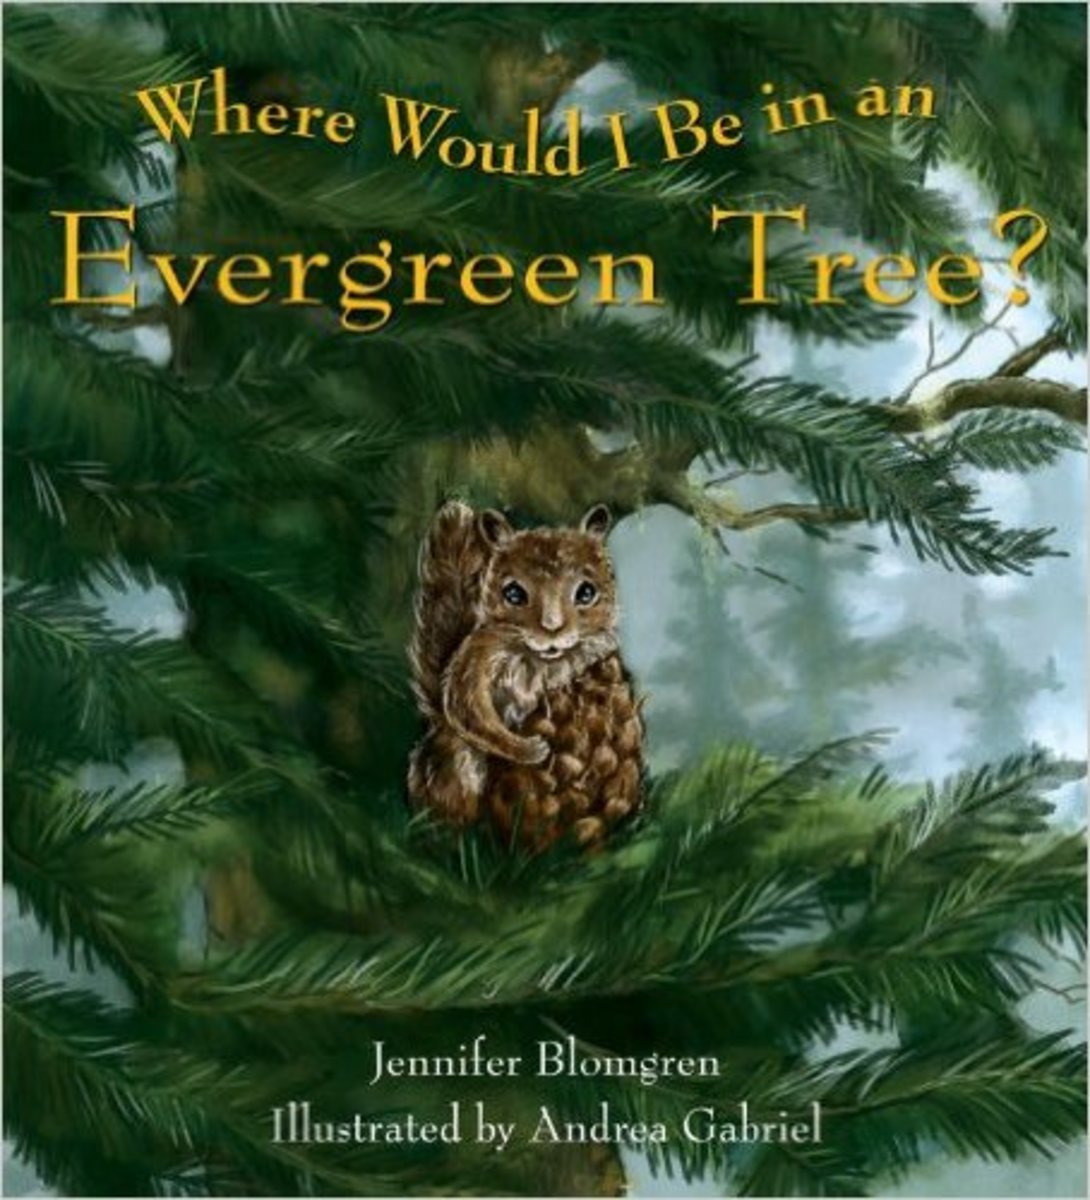 Where Would I Be in an Evergreen Tree? by Jennifer Blomgren - Image is from amazon.com.